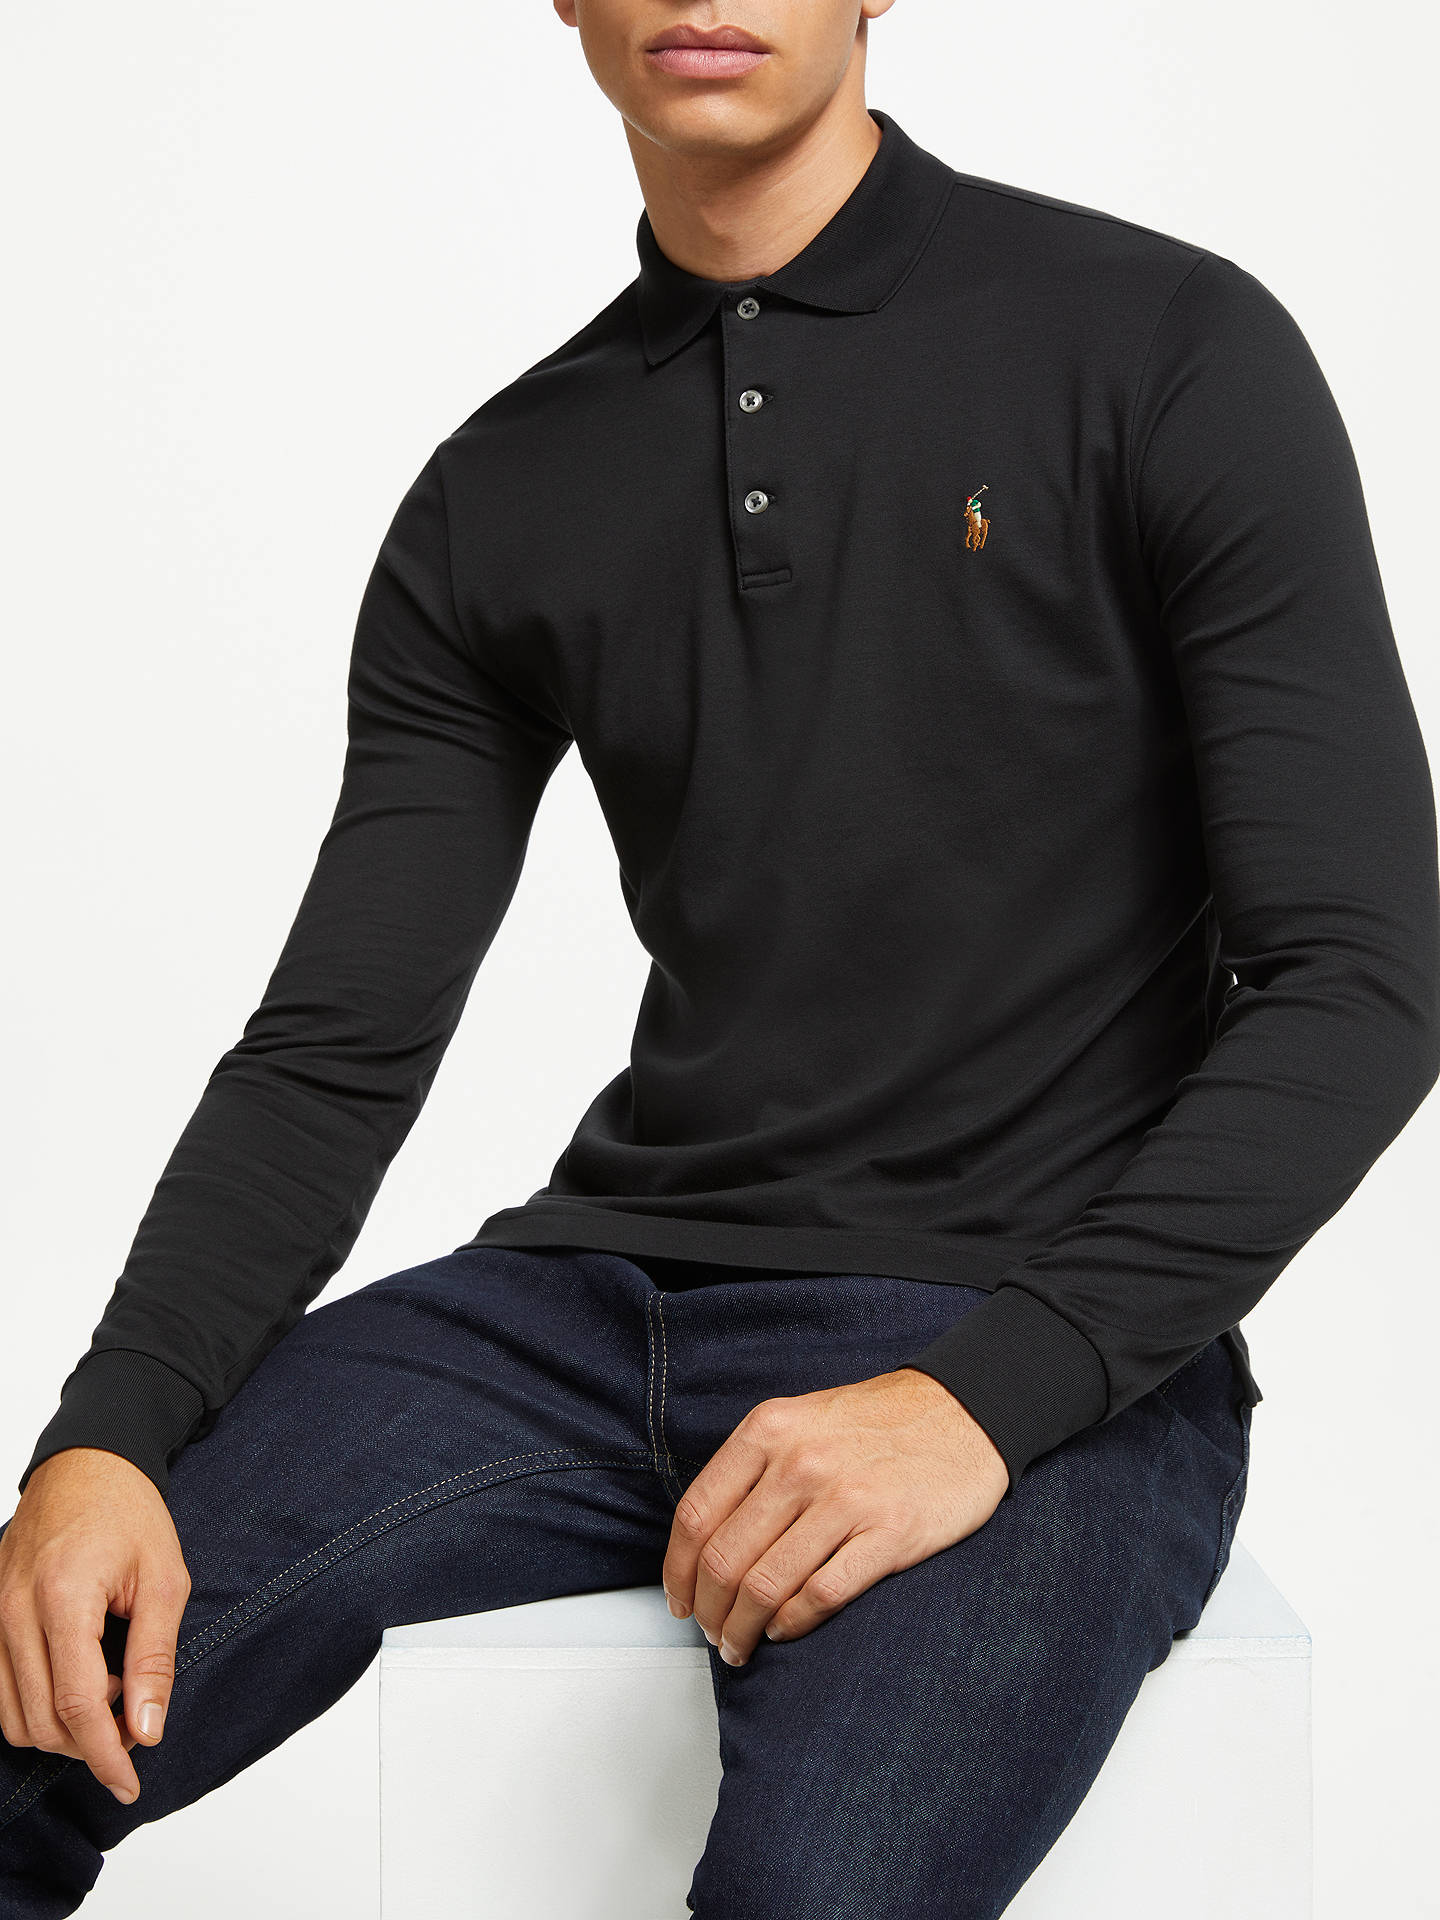 Polo Ralph Lauren Long Sleeve Polo Shirt At John Lewis Partners